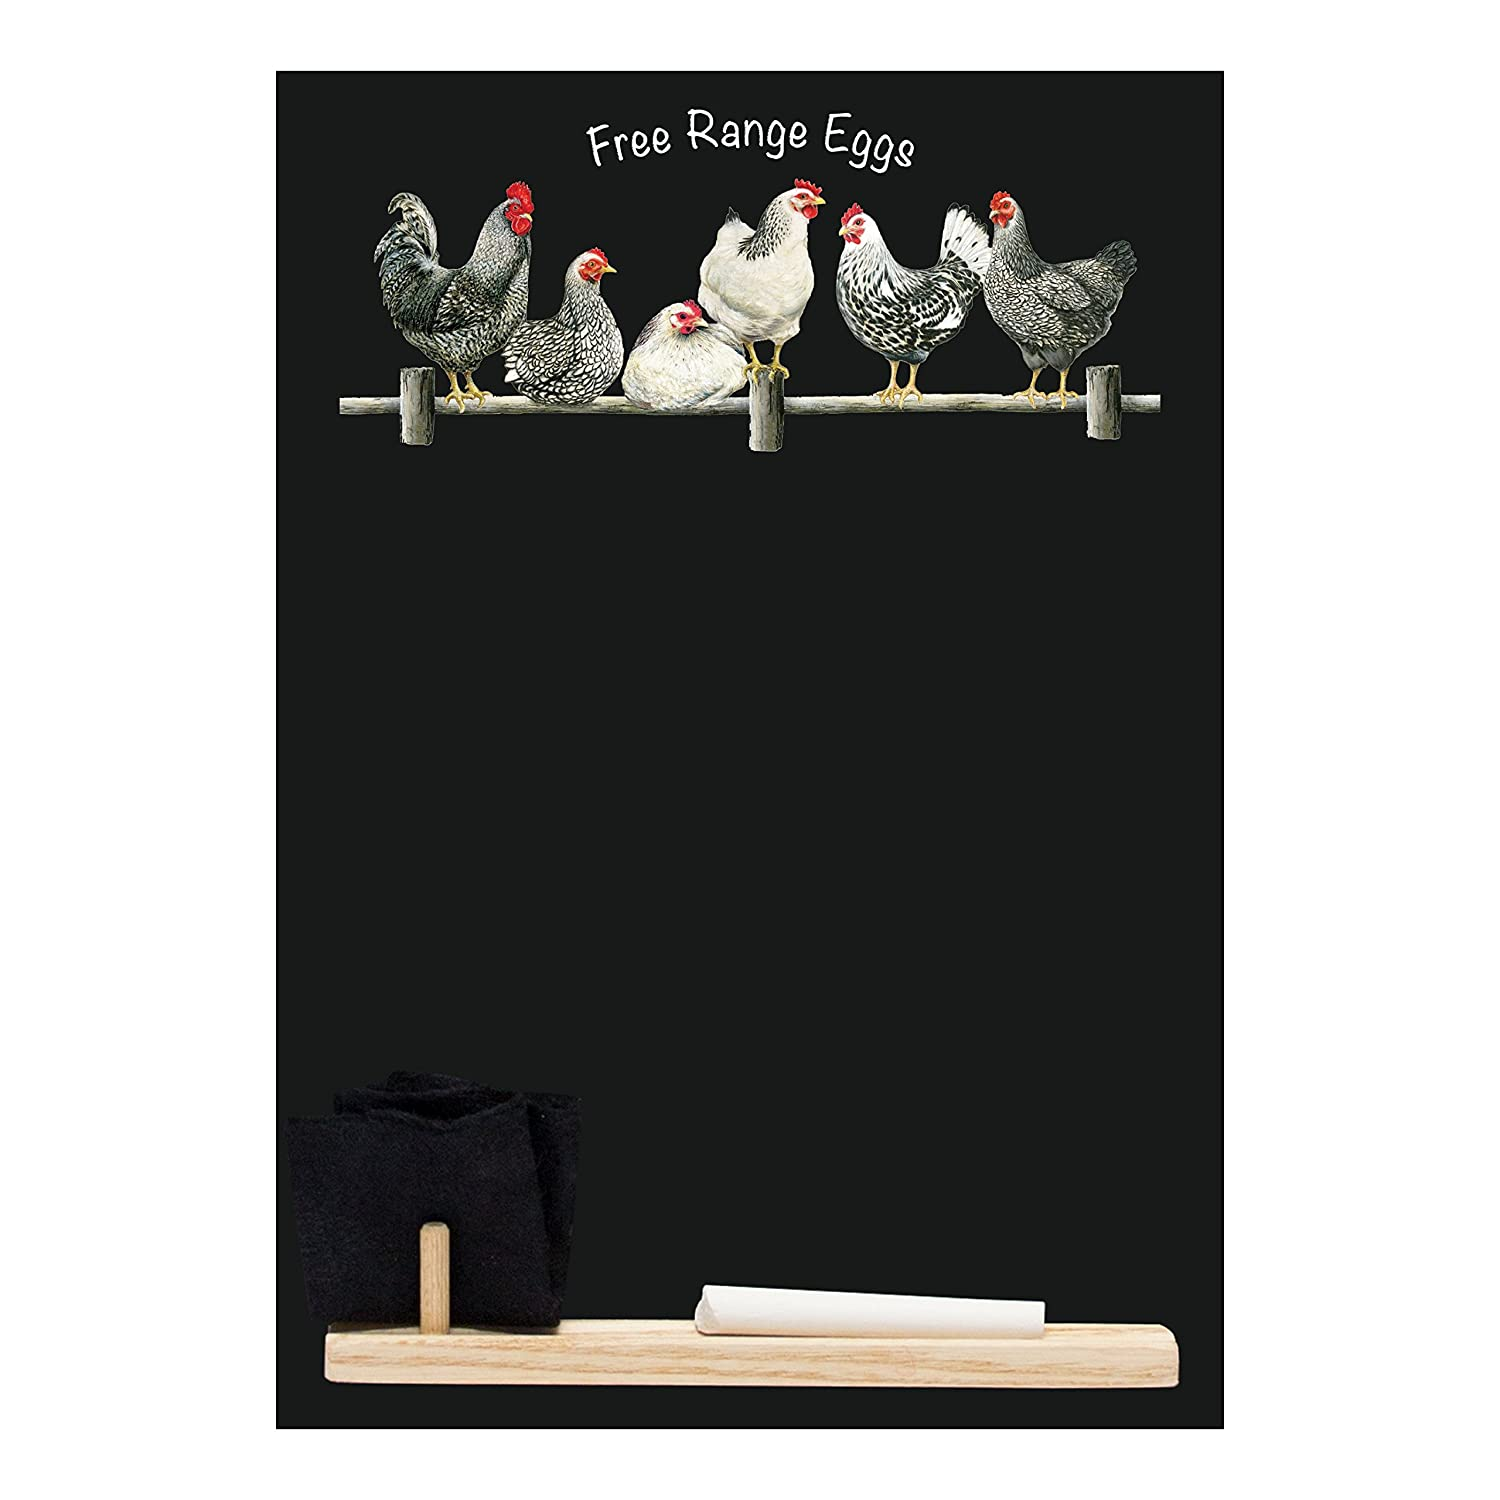 Chalkboards UK Small Memo Board/Chalkboard/Blackboard/Kitchen chalk Board with Printed Bake It Artwork, Wooden Tray, Piece of chalk & Felt Eraser. Booth Design Range., Wood, Black, 29.7 x 20.7 x 1 cm Porter & Woodman HCB003